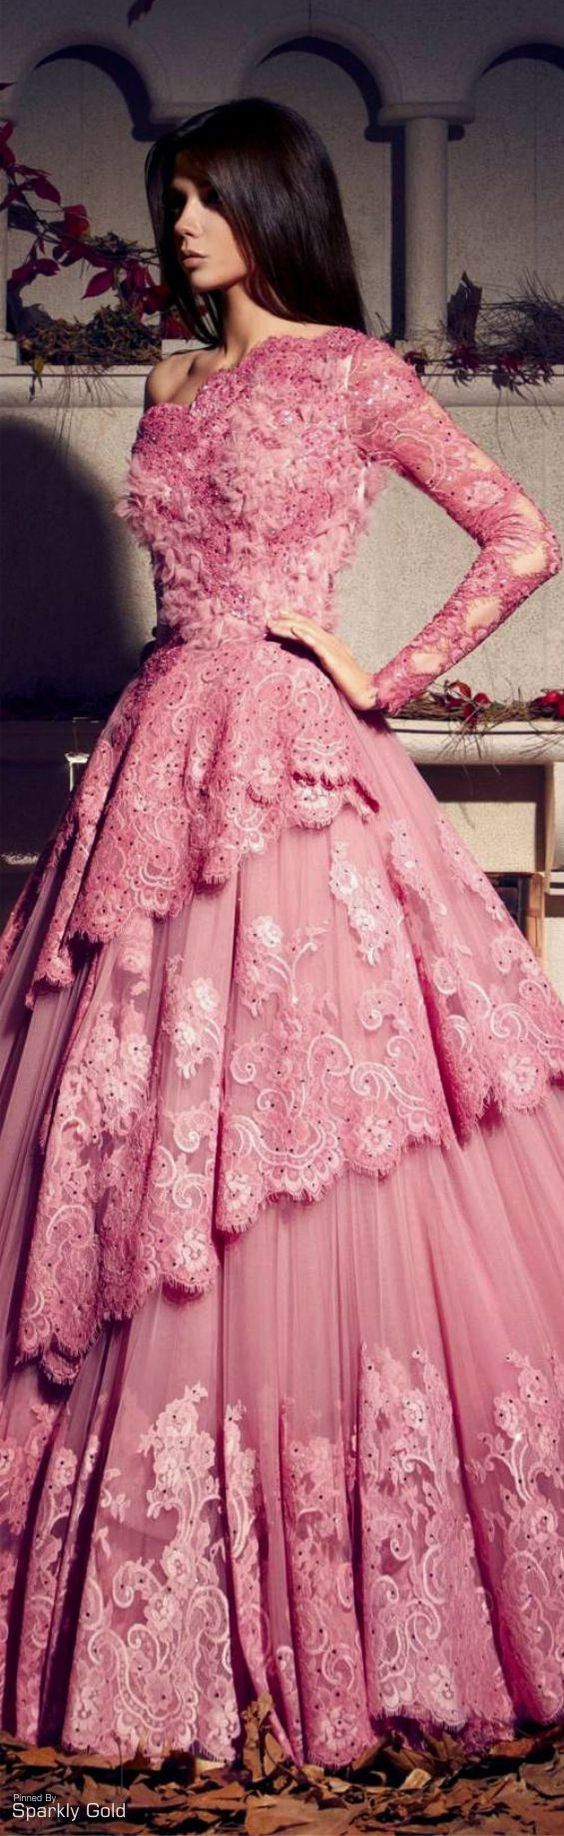 Long sleeve formal ball gowns can be used as wedding dresses by ...